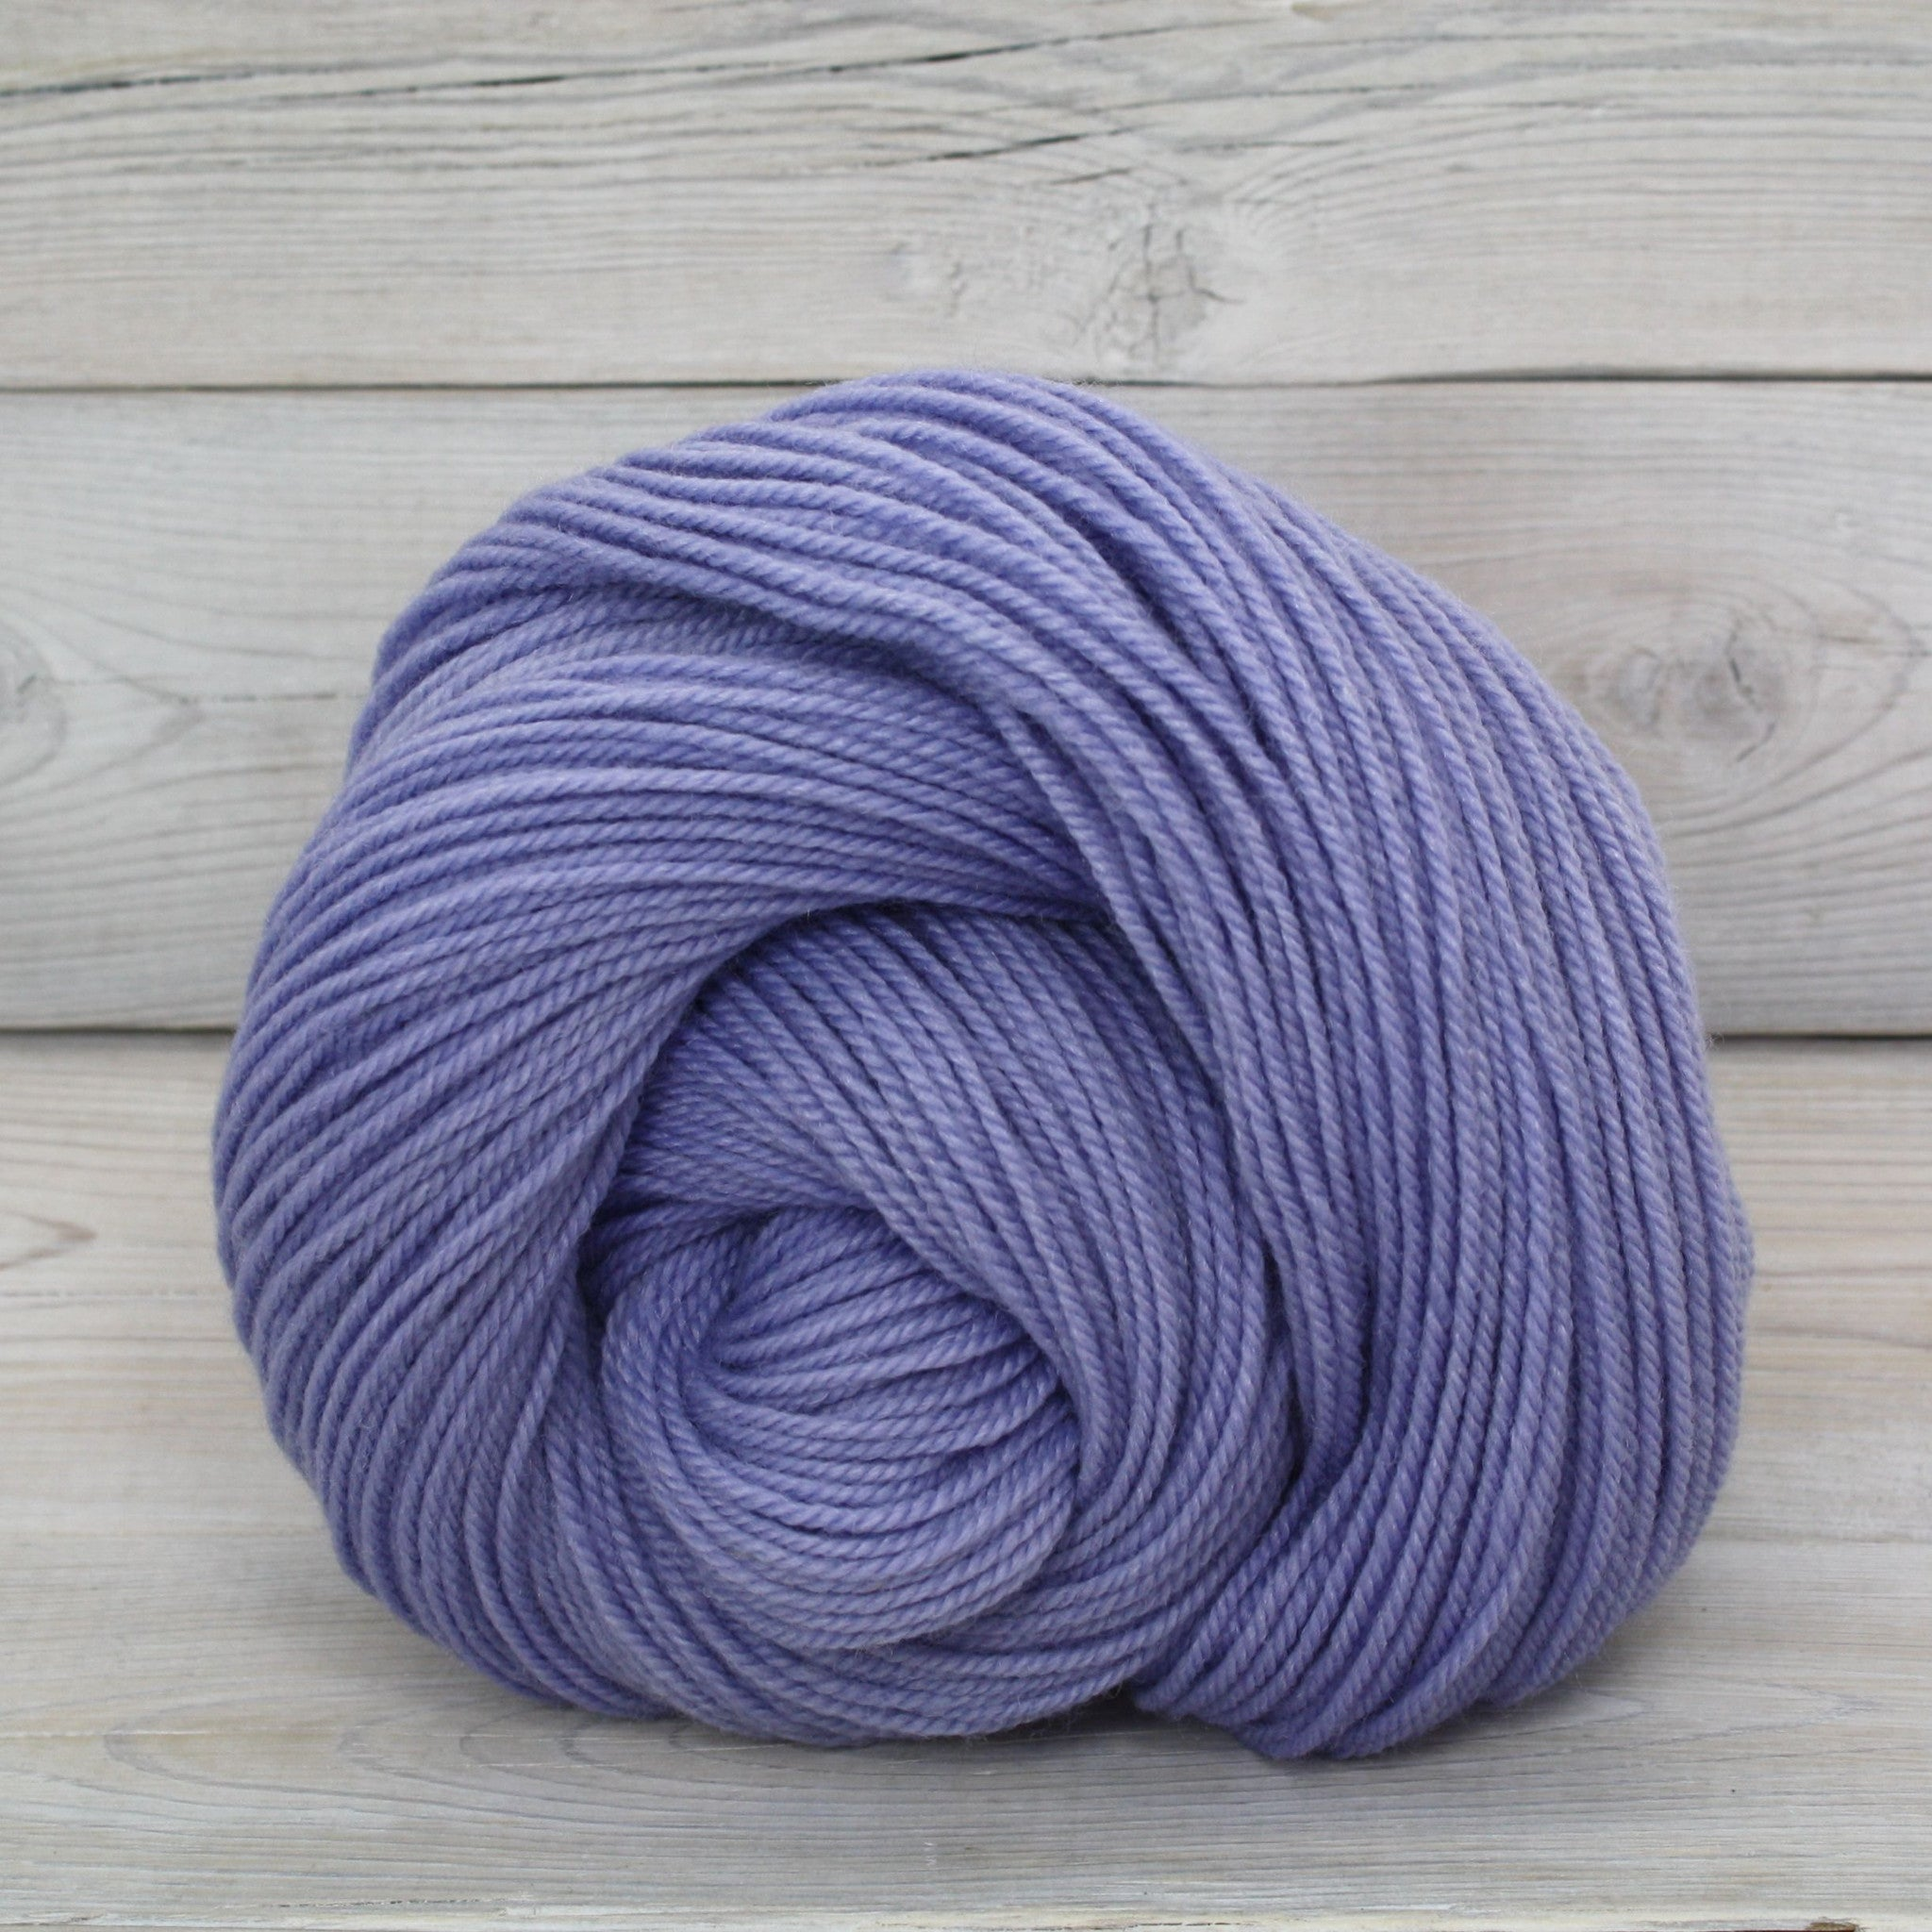 Luna Grey Fiber Arts Zeta Yarn | Colorway: Hydrangea